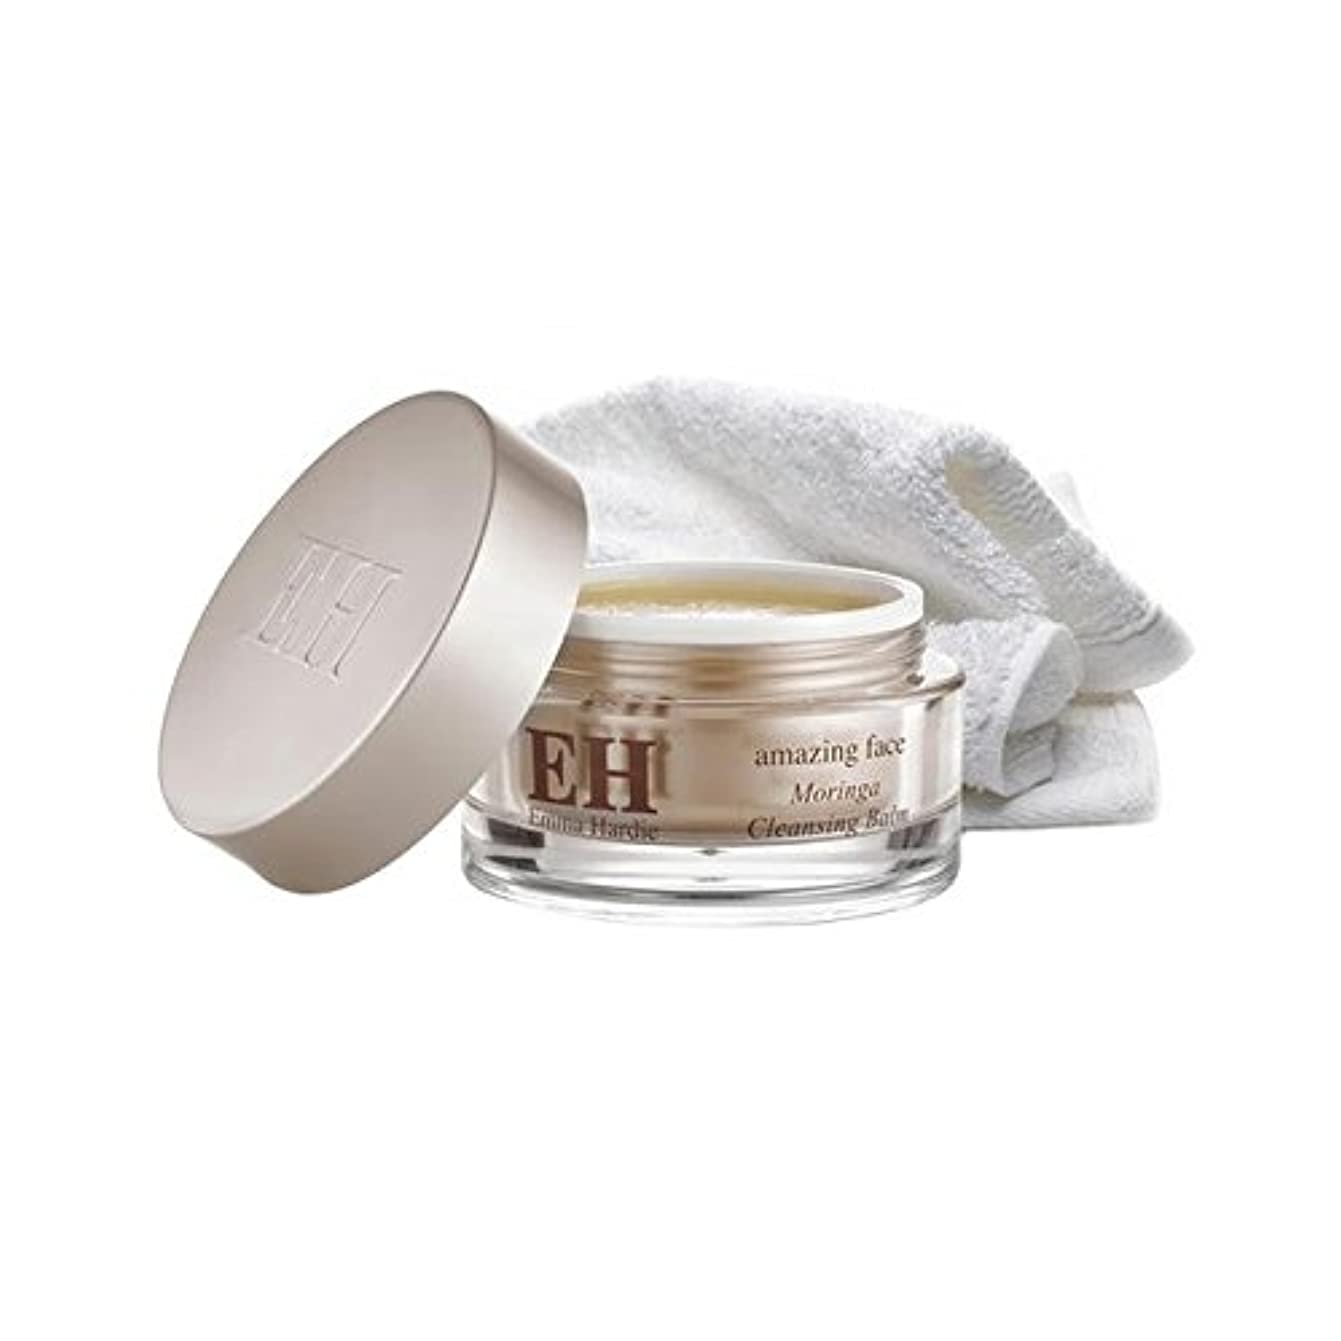 Emma Hardie Amazing Face Moringa Cleansing Balm with Cleansing Cloth 100ml (Pack of 6) - クレンジング布100ミリリットルとエマ?ハーディ...